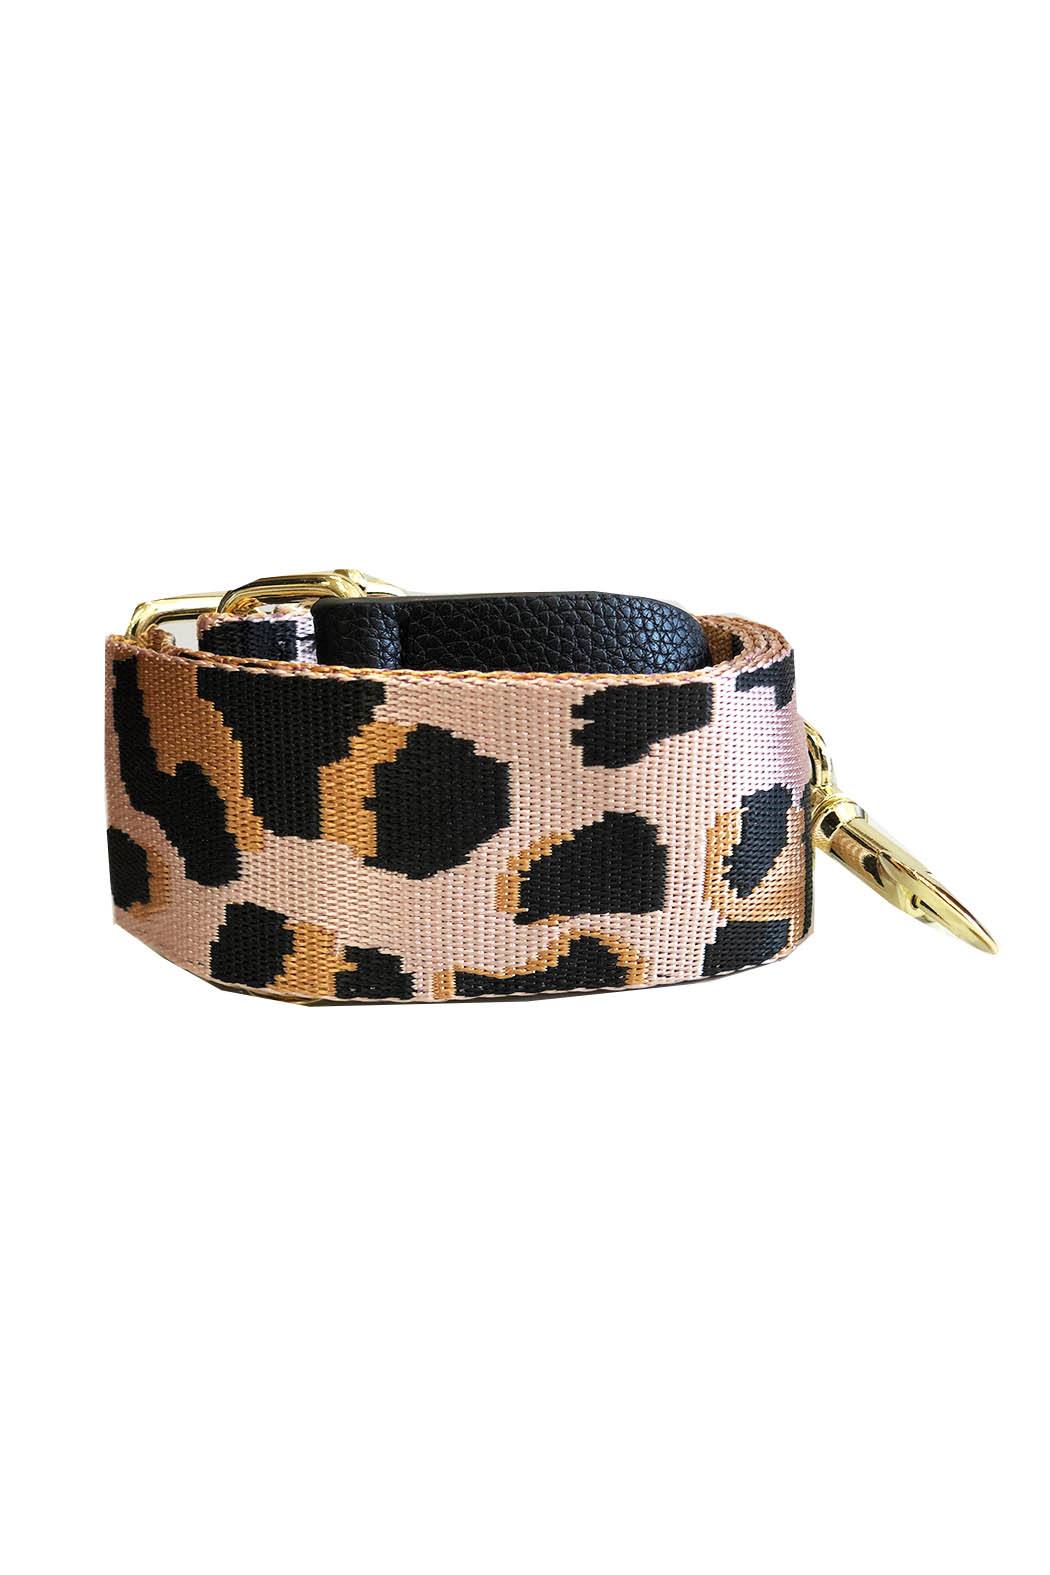 be clear handbags Leopard Strap - Front Cropped Image